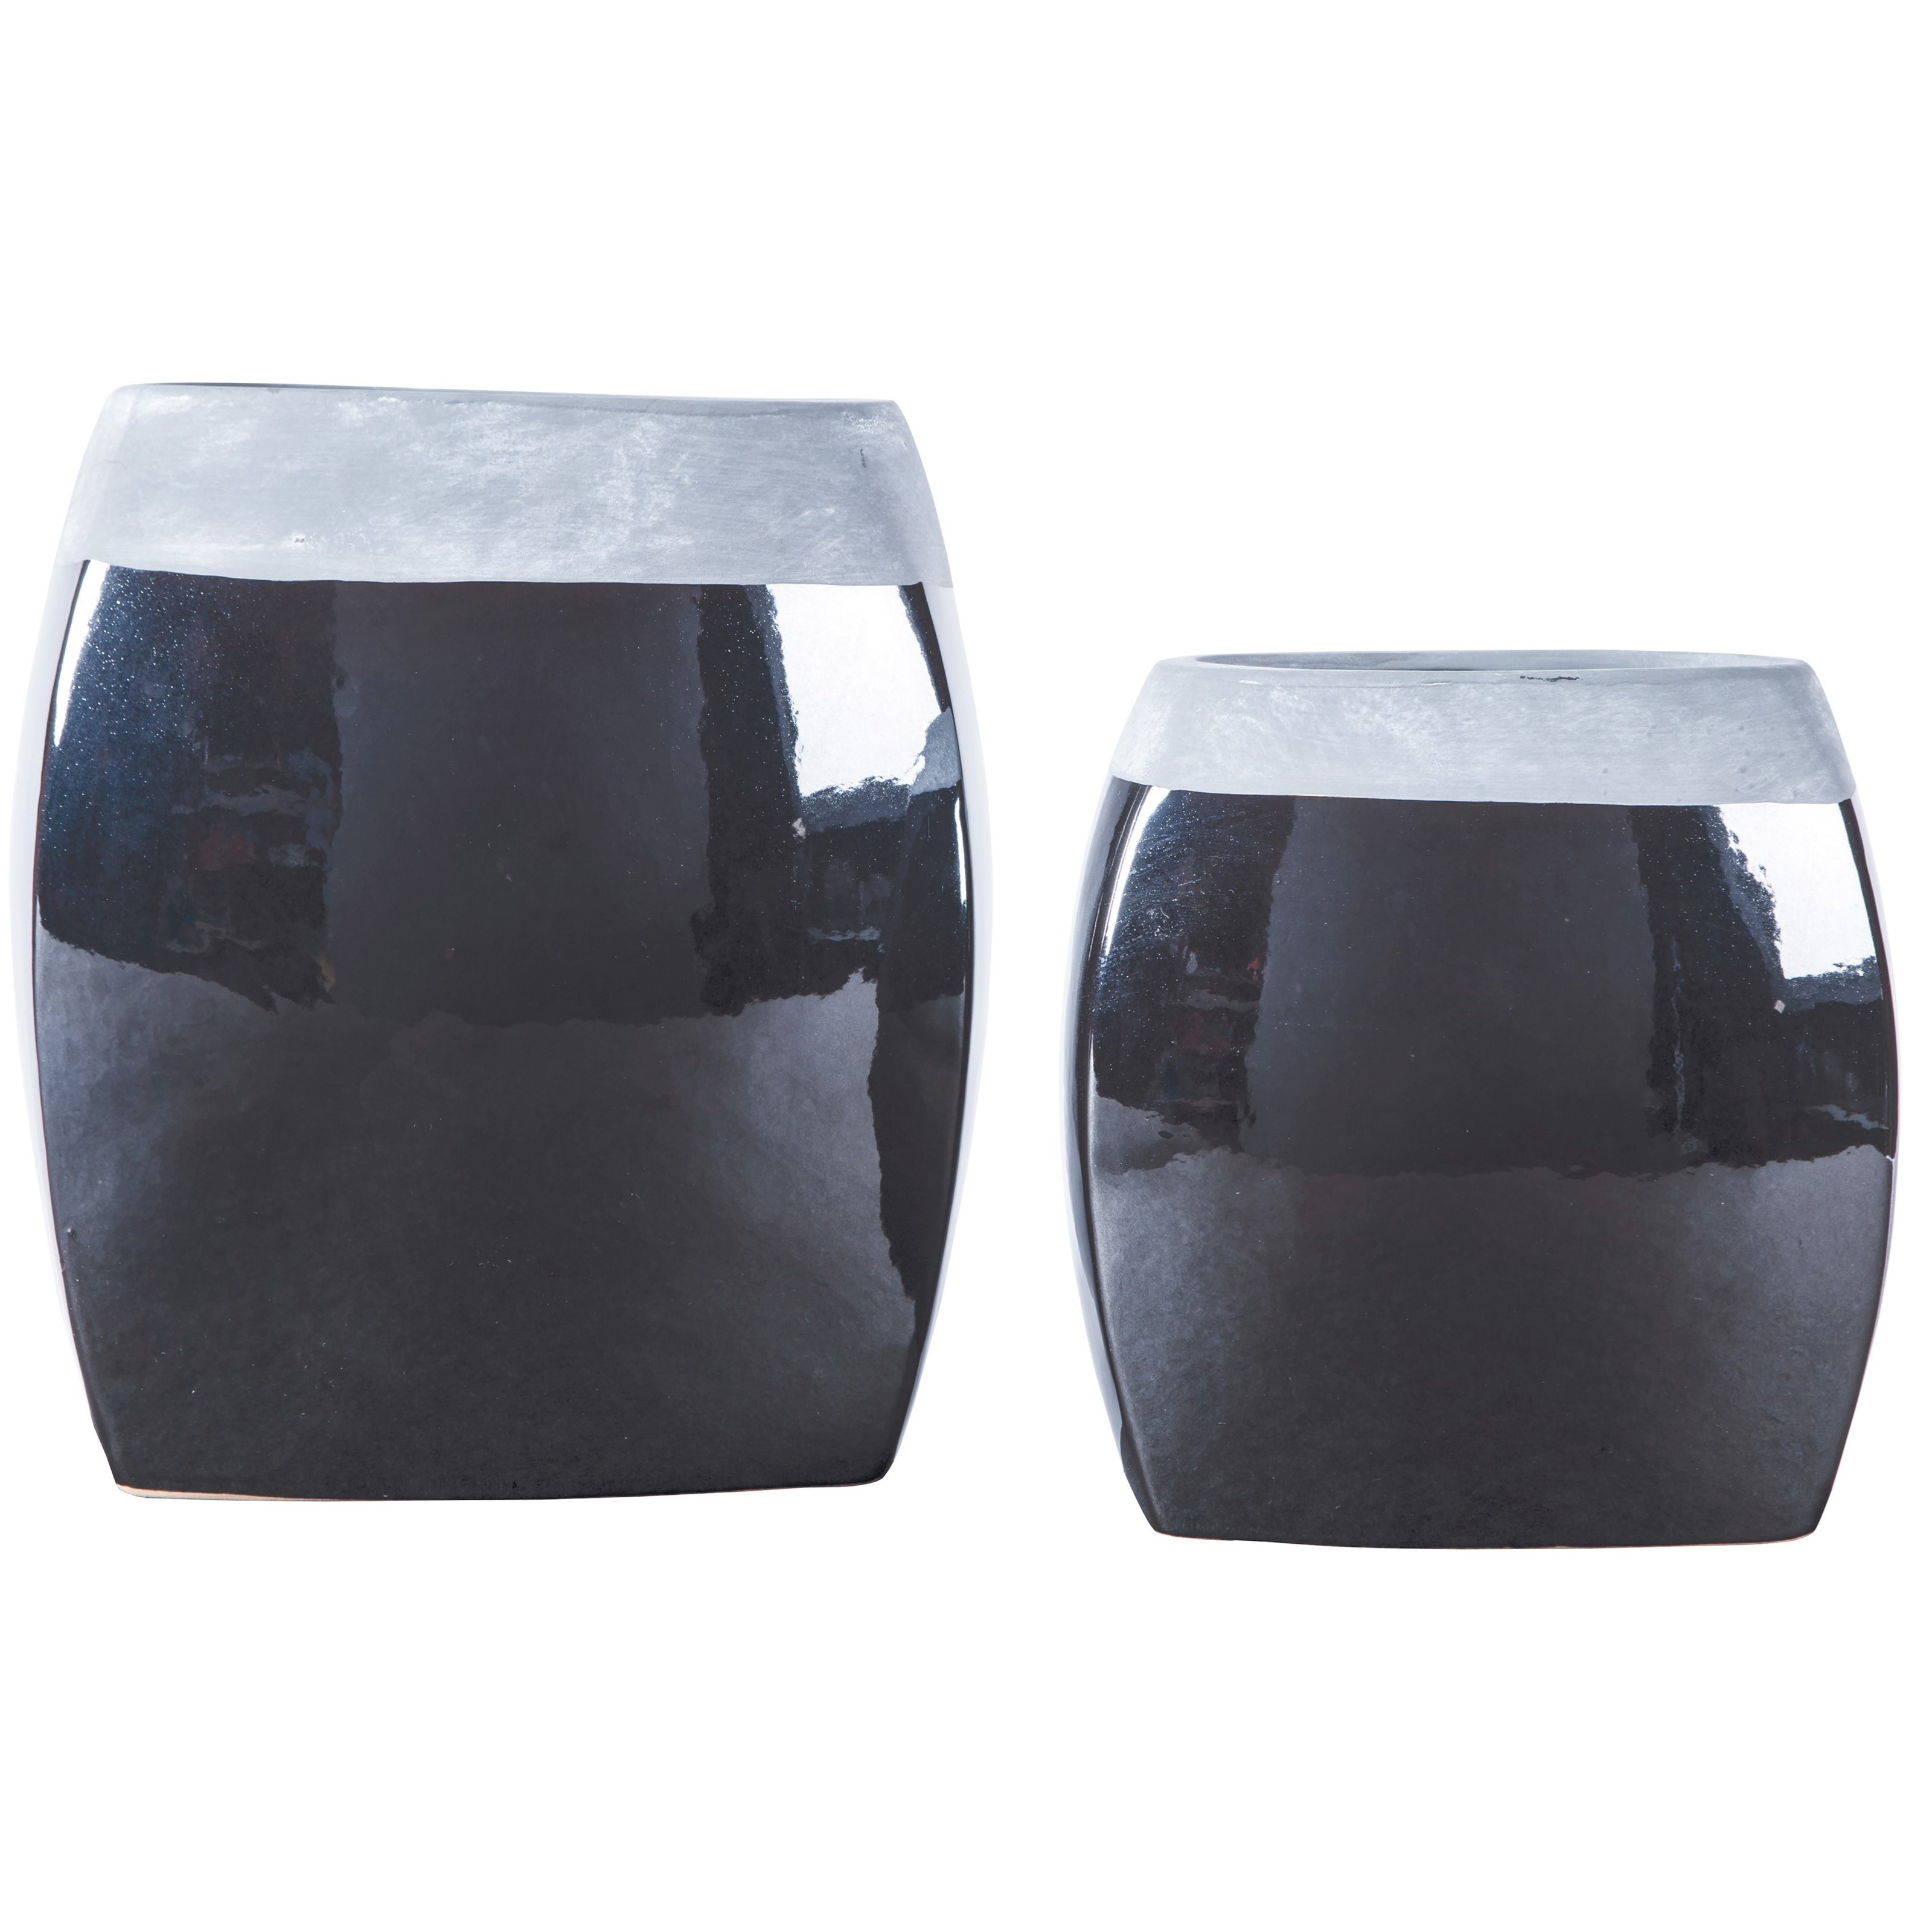 Signature Design by Ashley Accents Derring Black/Nickel Finish Vases (Set of 2) - Item Number: A2000264